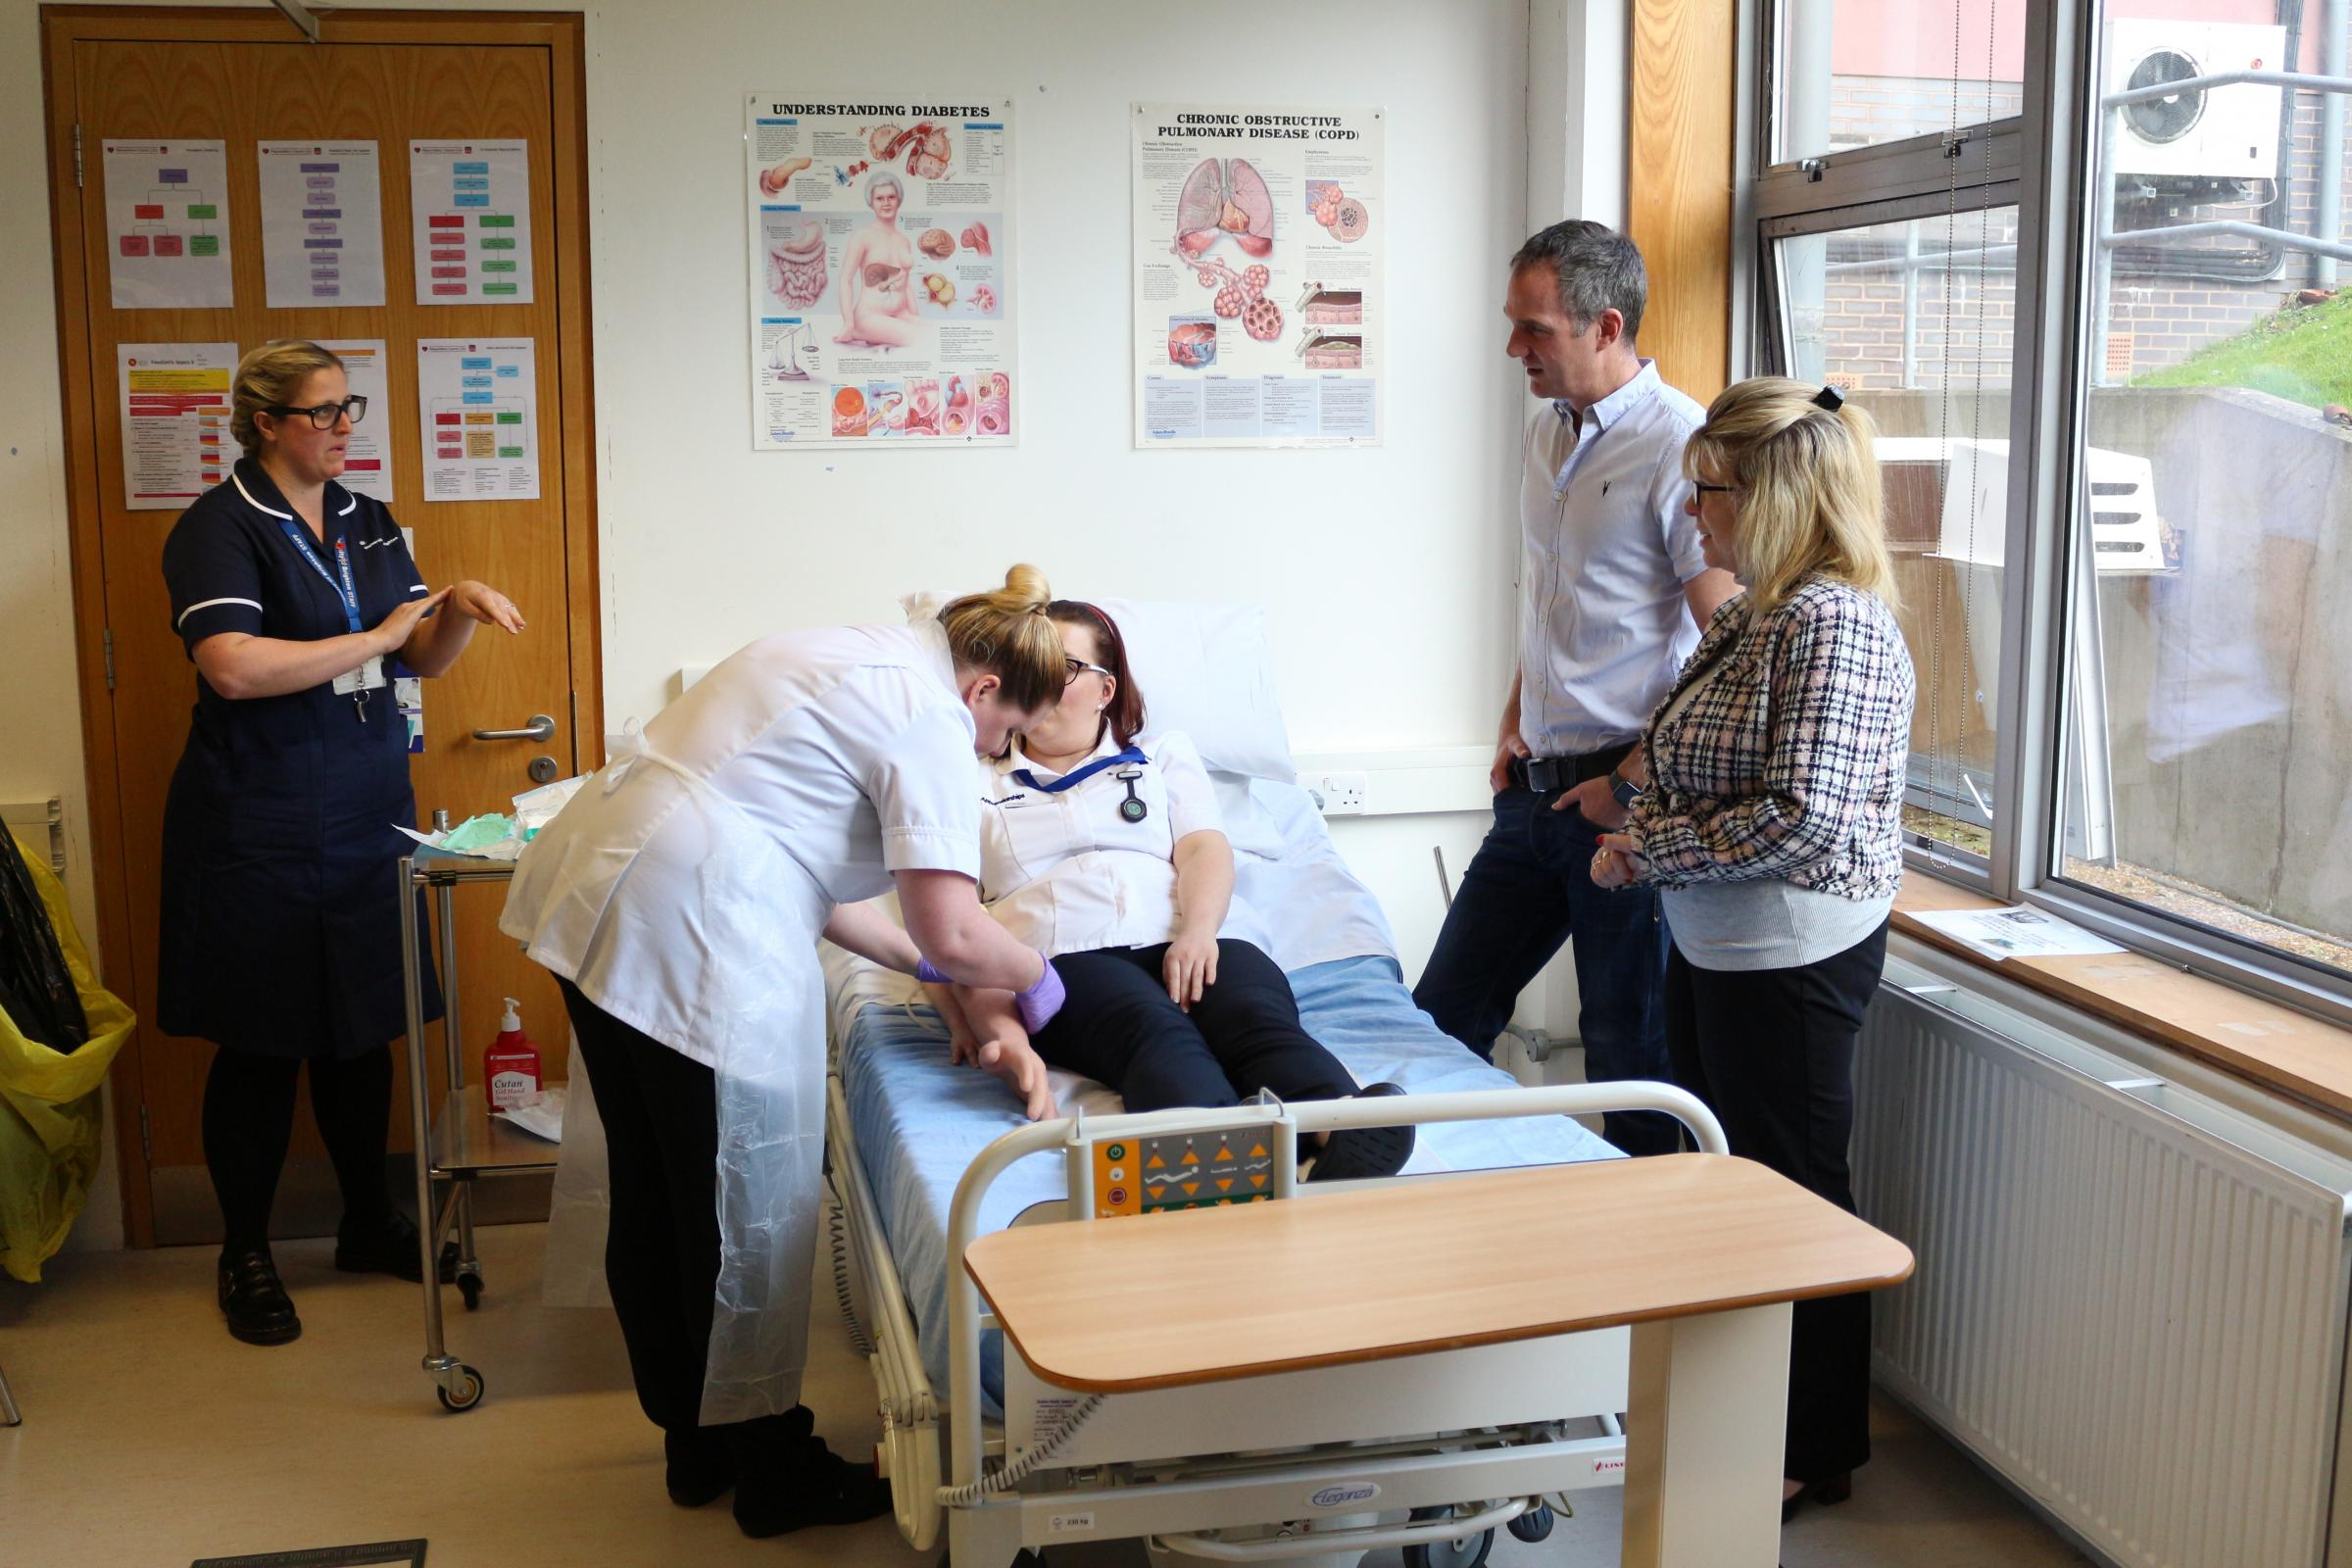 MPs Peter Kyle and Maria Caulfield observe an 'Aseptic Non Touch Technique'